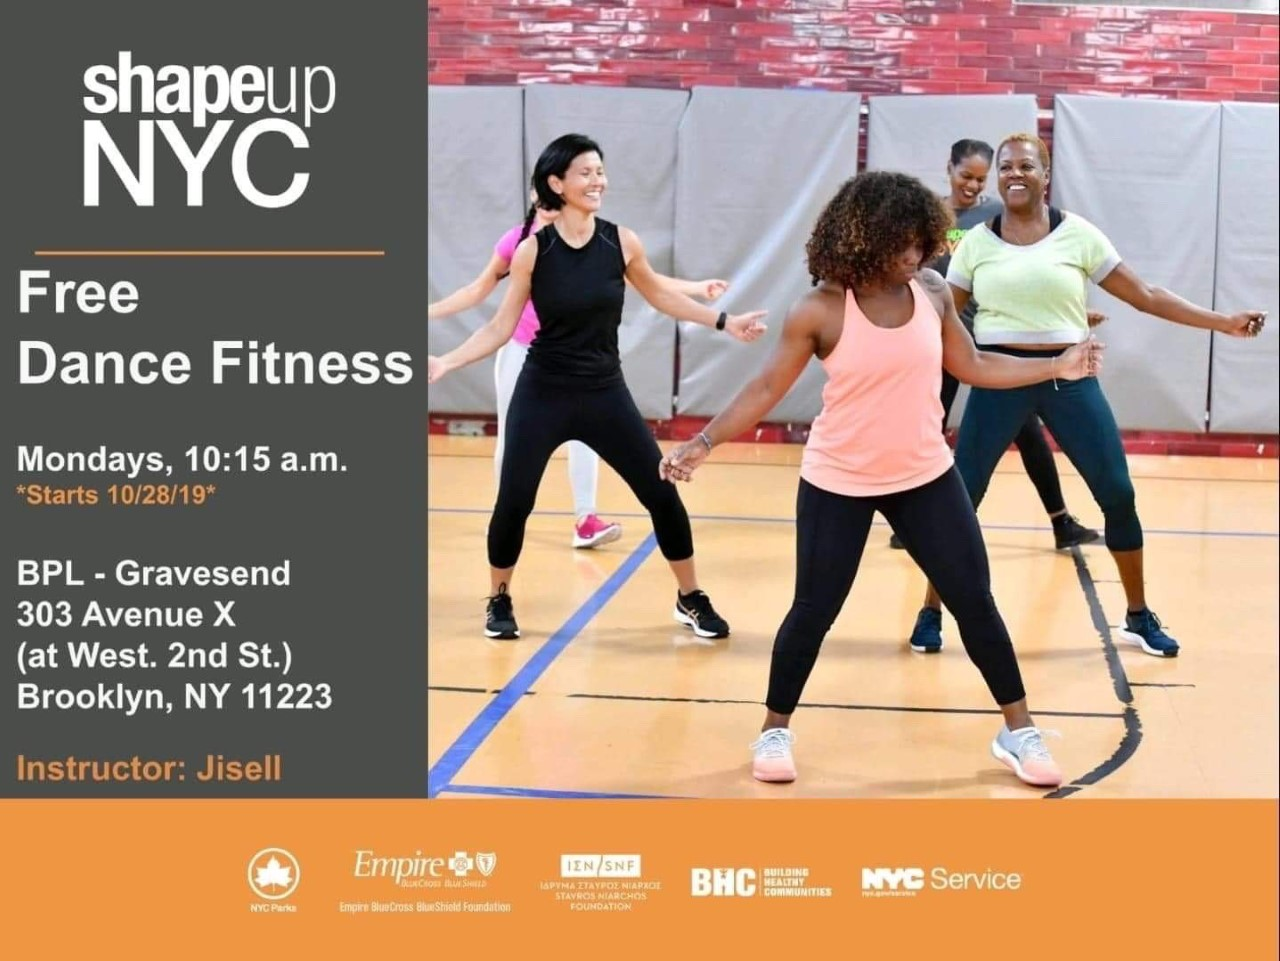 Shape up NYC, free dance fitness Mondays 10:15 a.m. Starts 10/28/2019 at the library on ave X, 11223